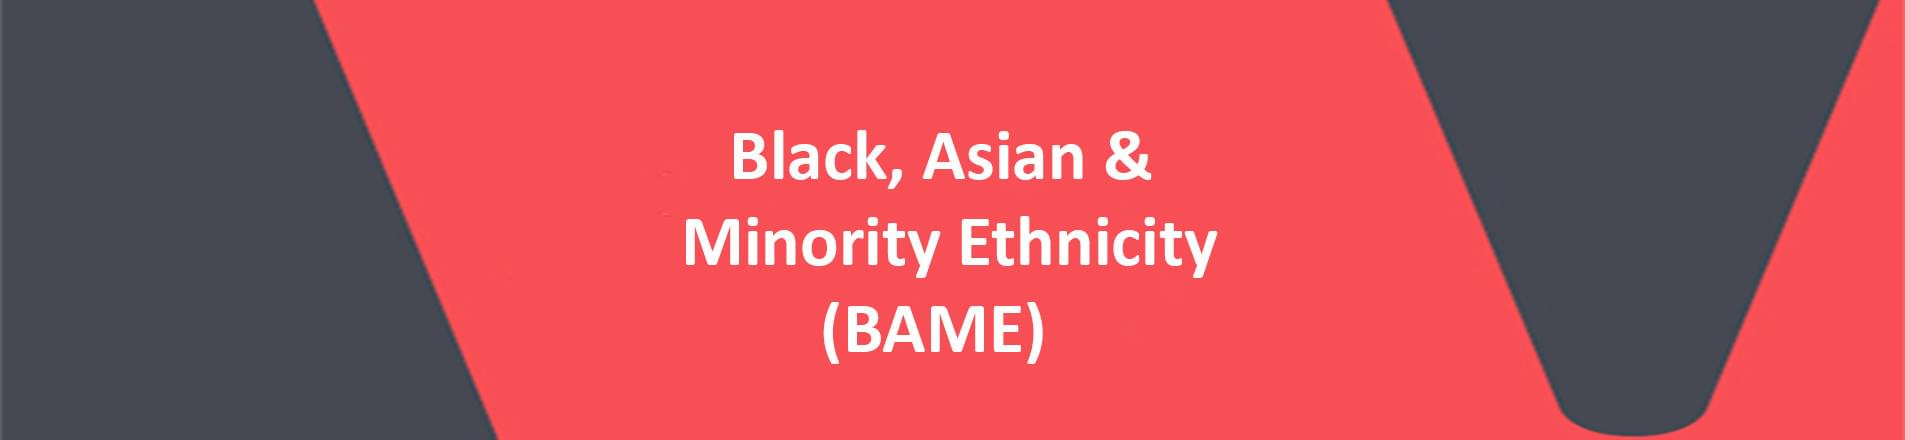 """Image of VERCIDA banner.  Red background with the phrase """"Black, Asian & Minority Ethnicity; open brackets, BAME , close brackets"""" spelled out in white letters."""